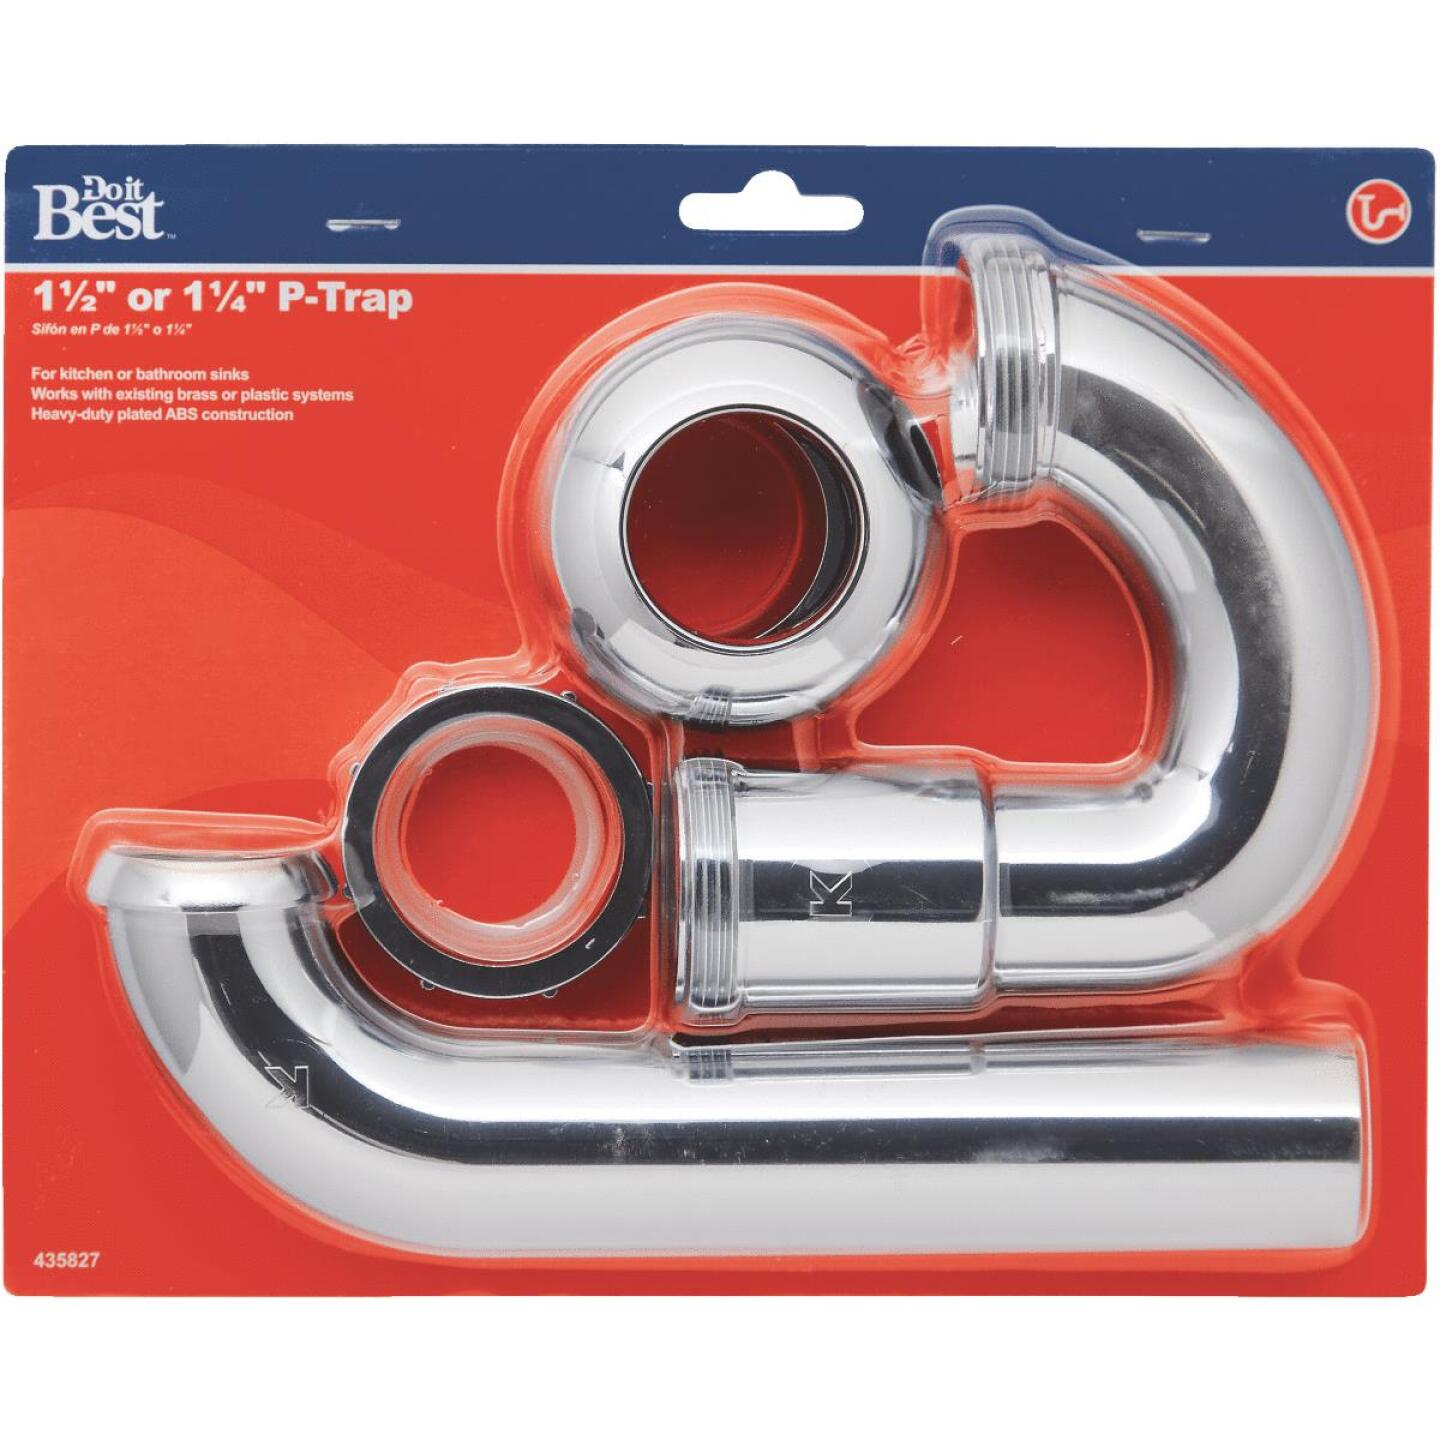 Do it Best 1-1/2 x 1-1/2 In. or 1-1/2 x 1-1/4 In. Chrome-Plated ABS P-Trap Image 2